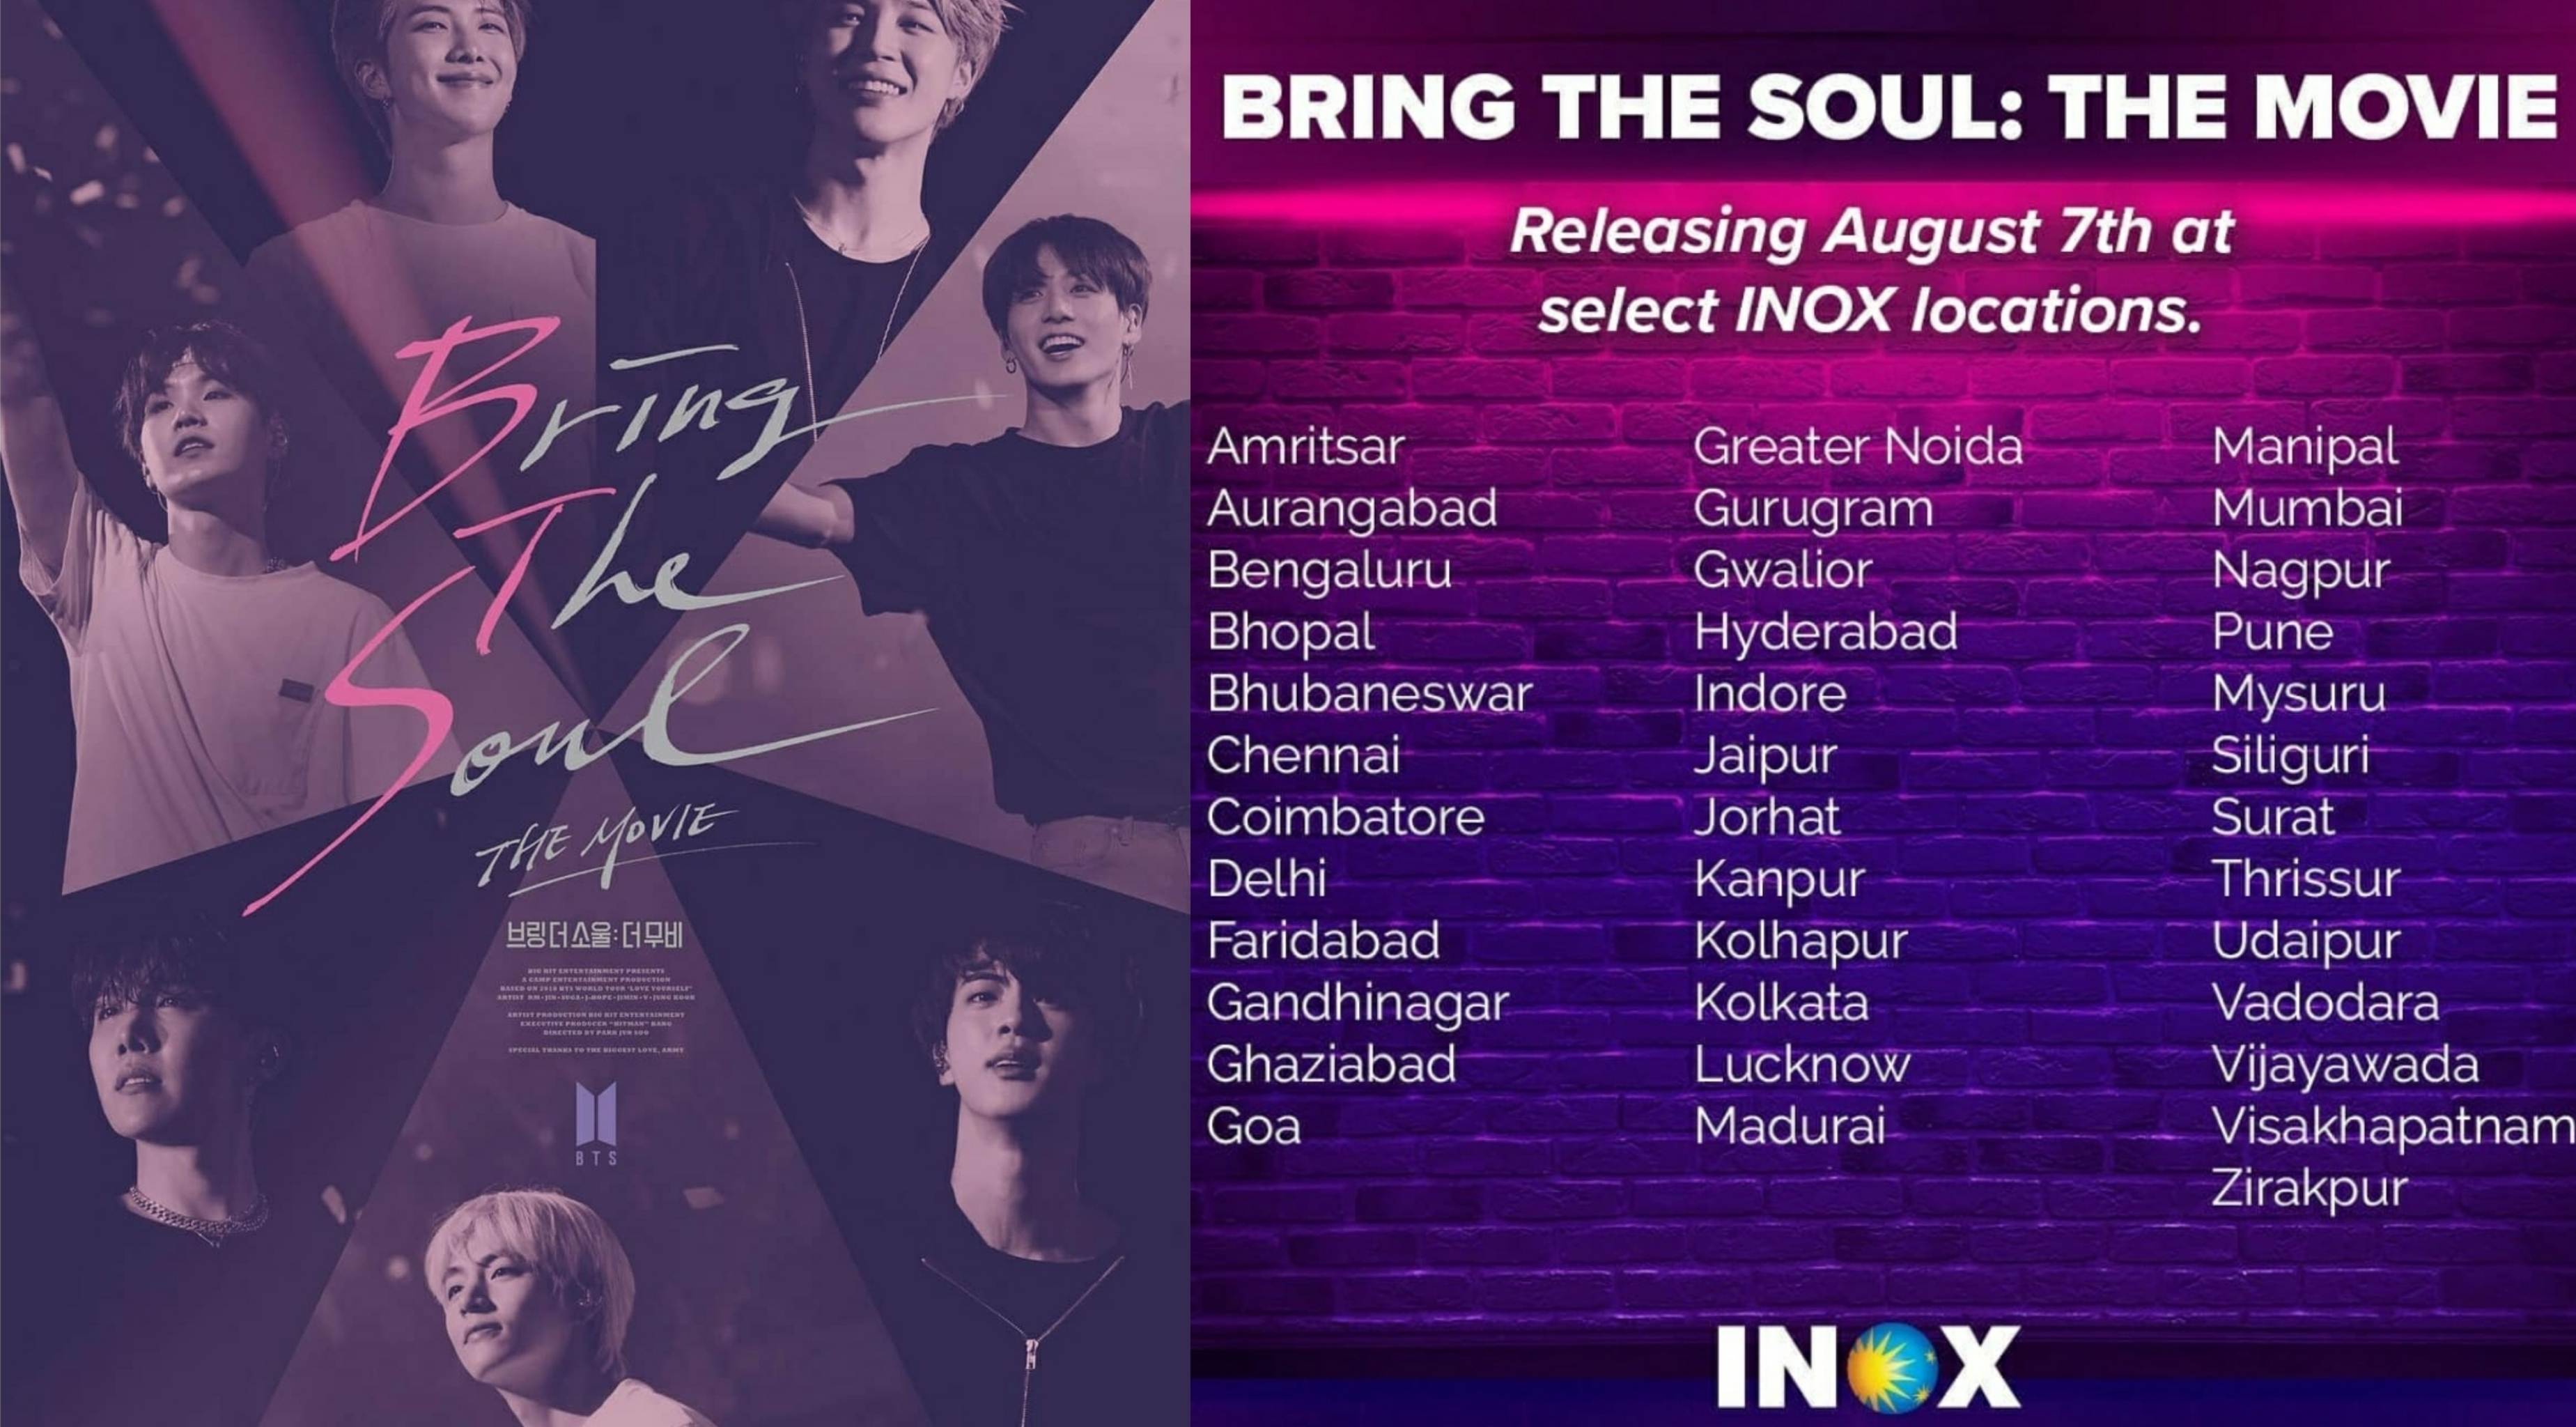 BTS' Bring The Soul: The Movie Is Set To Release In India [50+